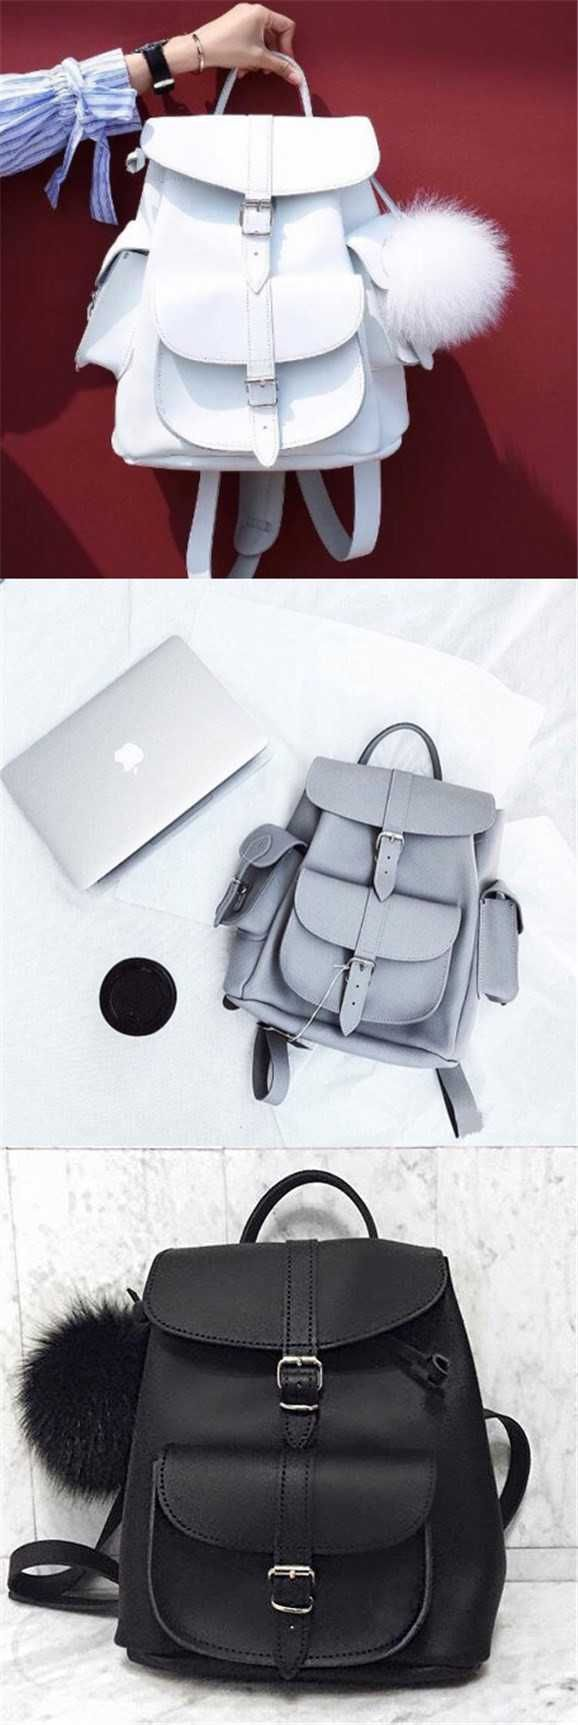 designer backpacks leather accessories bags outdoor backpack flip womens bag shool bookbag for teens. Save.extra 20% OFF on $45+ Sitewide till 30th use code SUMMER20%OFF